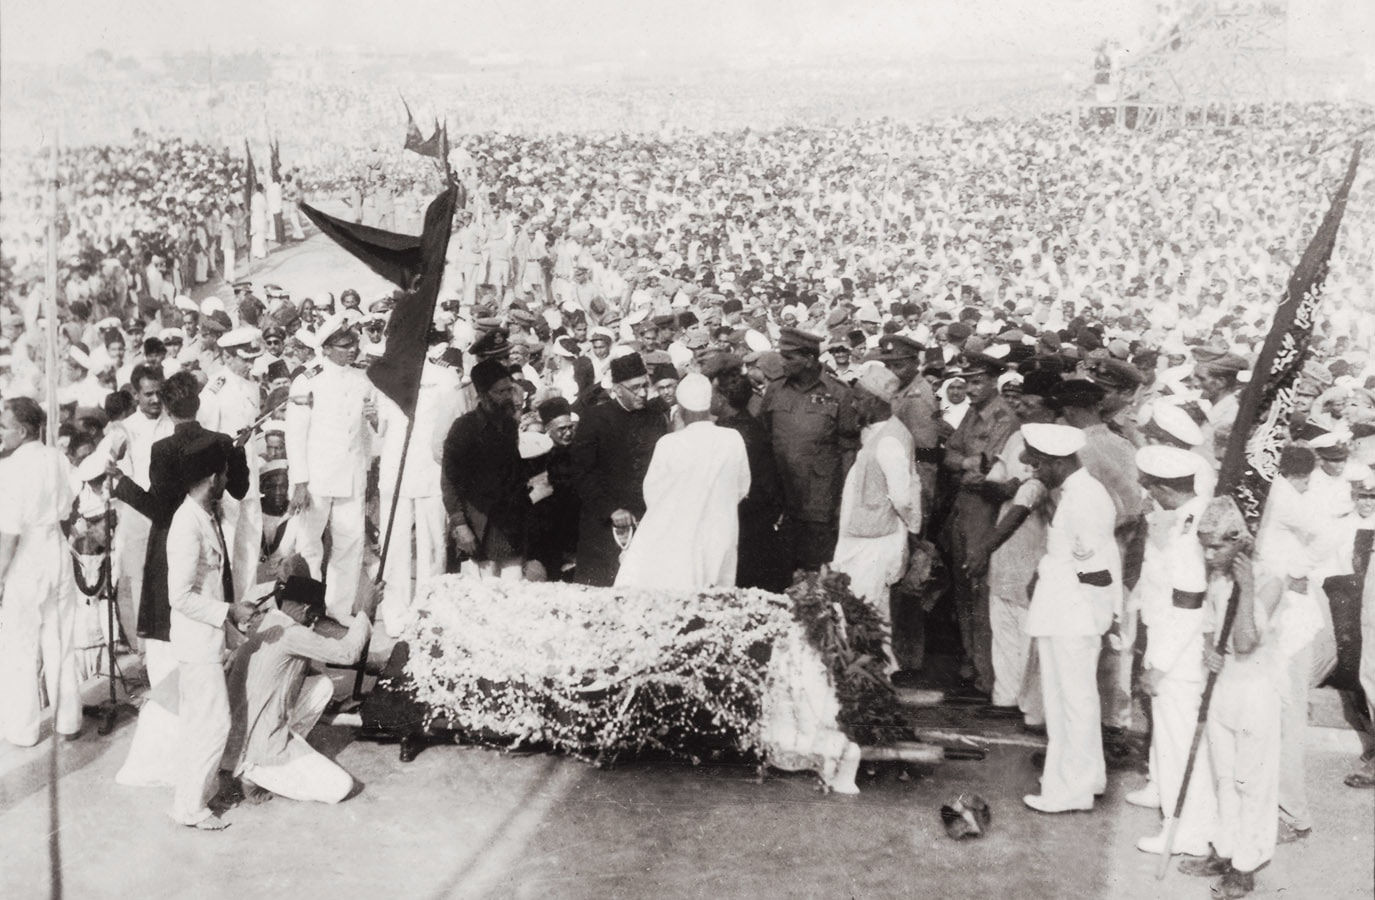 A view of Quaid-i-Azam Mohammad Ali Jinnah's funeral on September 12, 1948, at the Exhibition Ground in Karachi. Nawabzada Liaquat Ali Khan (centre) is seen conferring with Maulana Shabbir Ahmed Usmani (in a white shalwar kameez), as he prepared to lead the funeral prayers. | Photo: The Press Information Department, Ministry of Information, Broadcasting & National Heritage, Islamabad (PID)